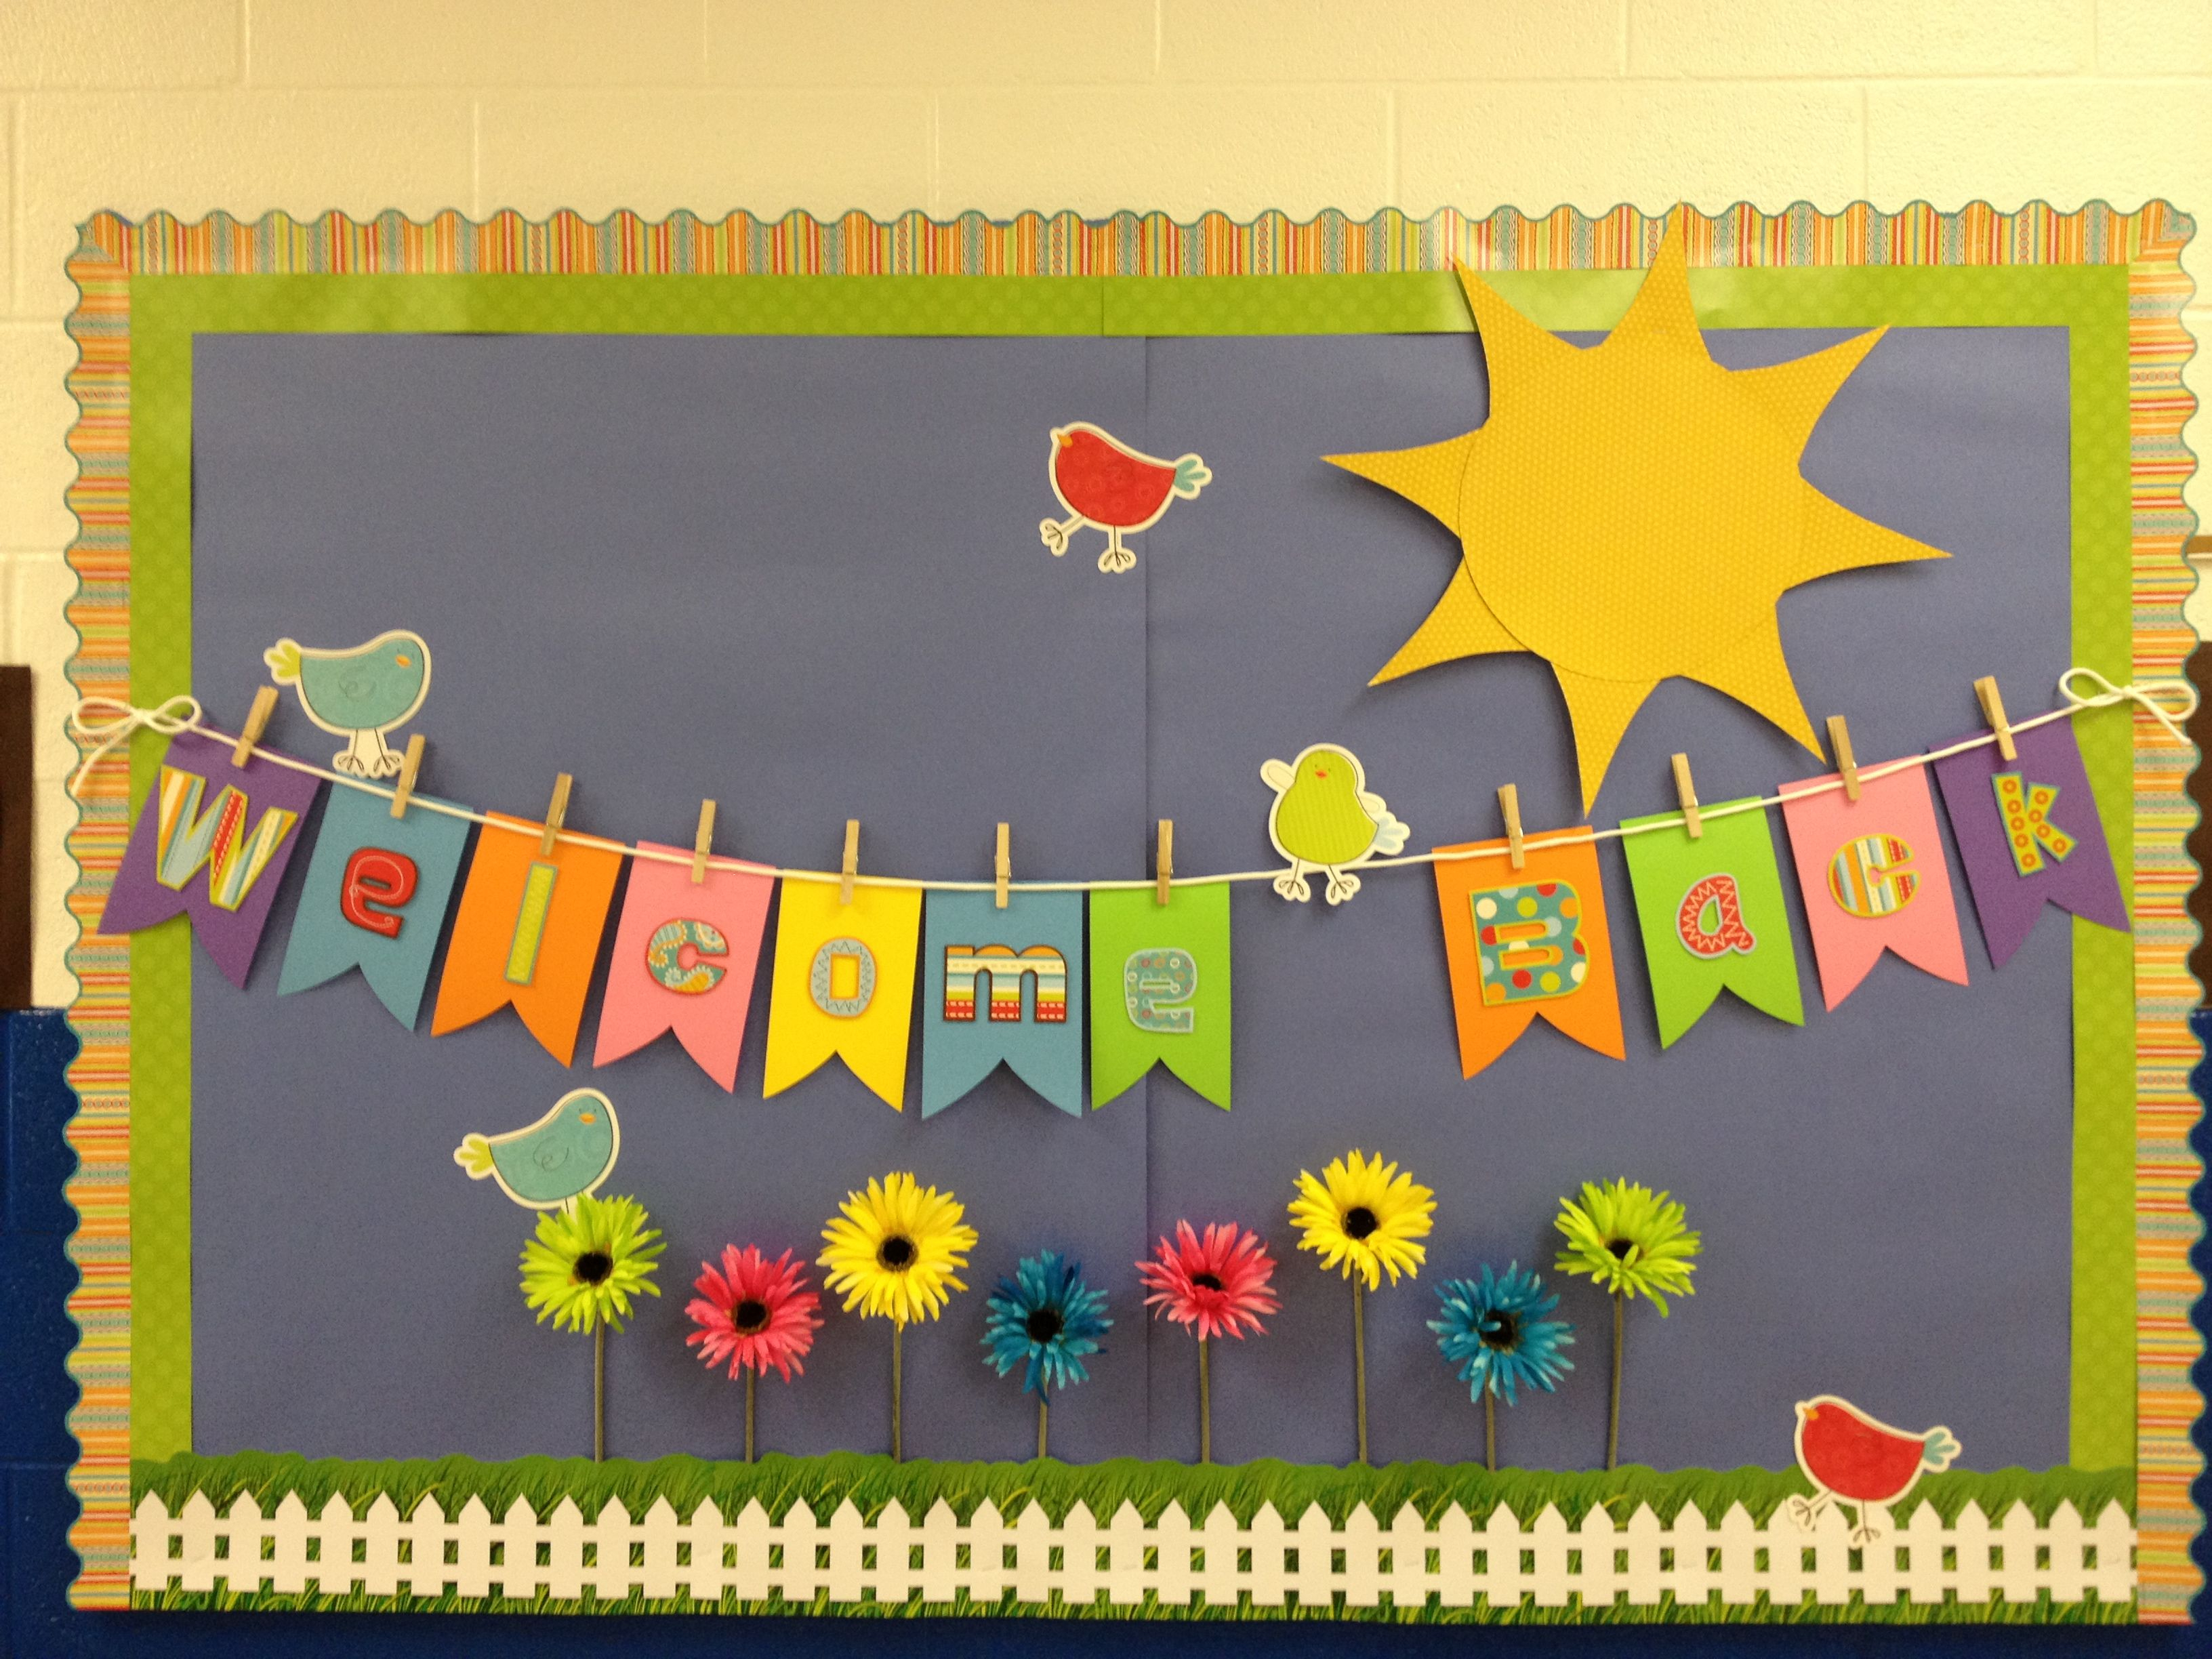 10 Gorgeous Back To School Preschool Bulletin Board Ideas spring theme welcome back to school bulletin boards ideas bing 11 2020